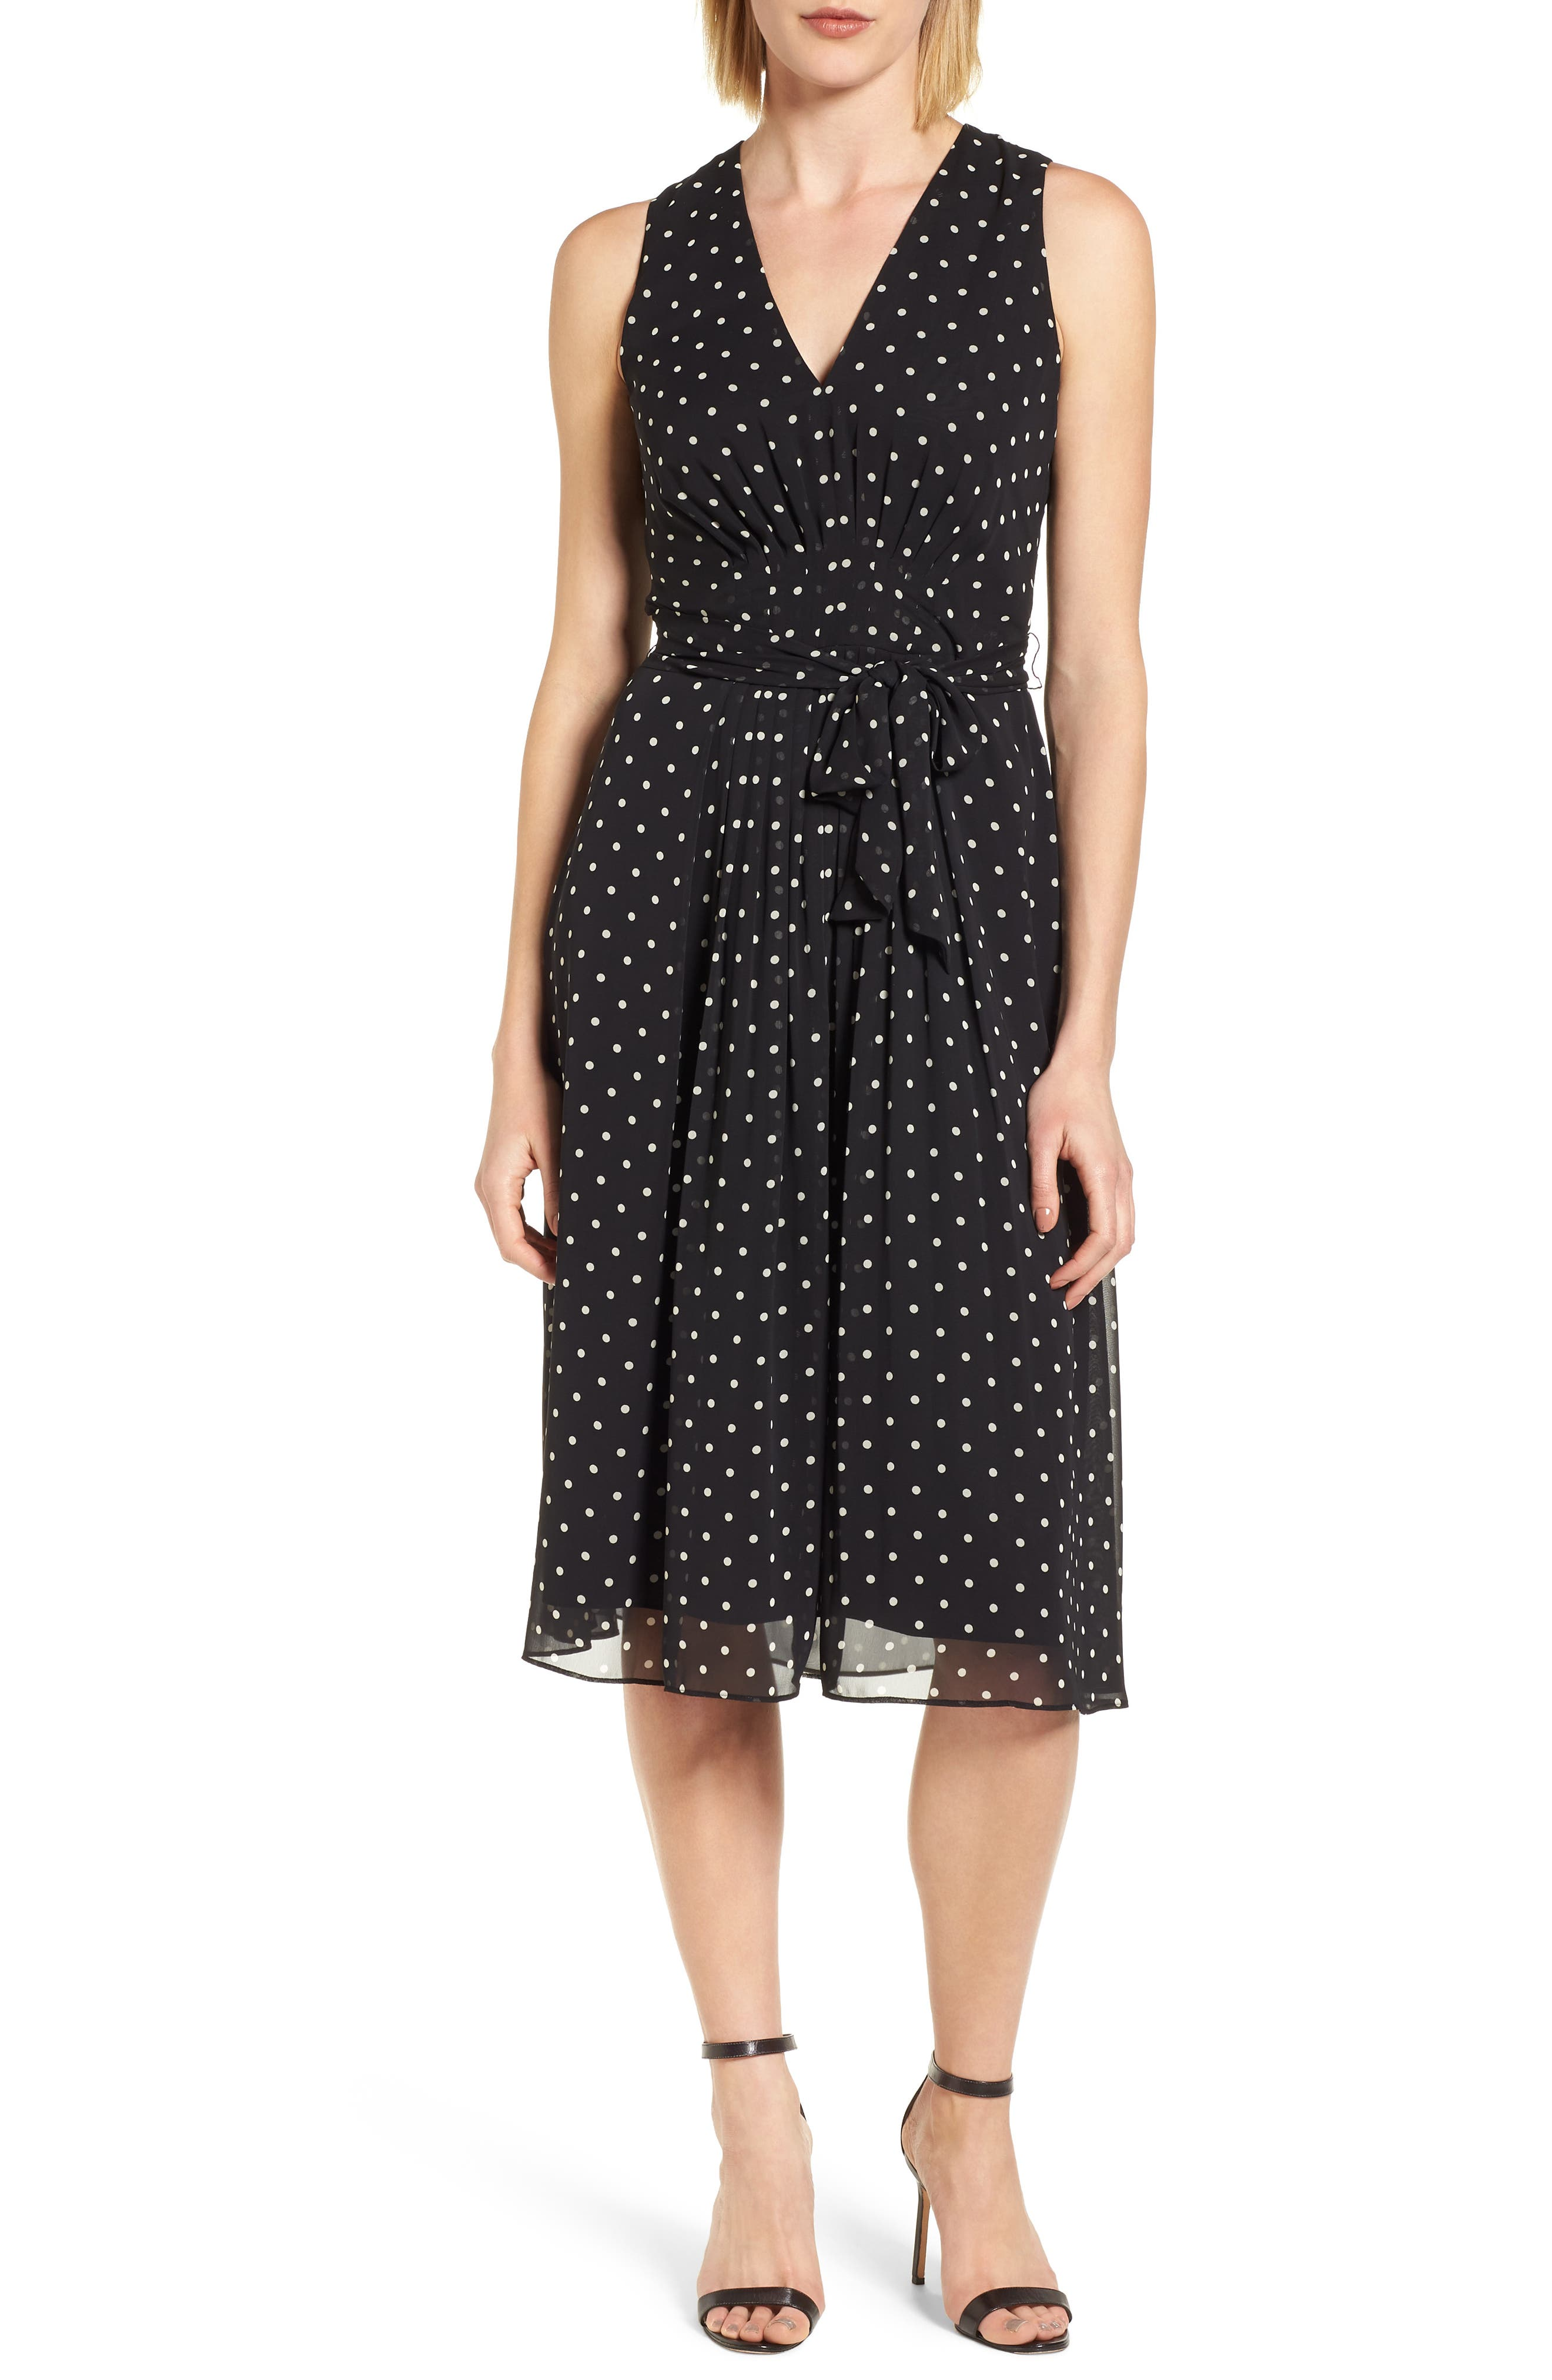 Dotted Chiffon Dress,                         Main,                         color, Black/ White